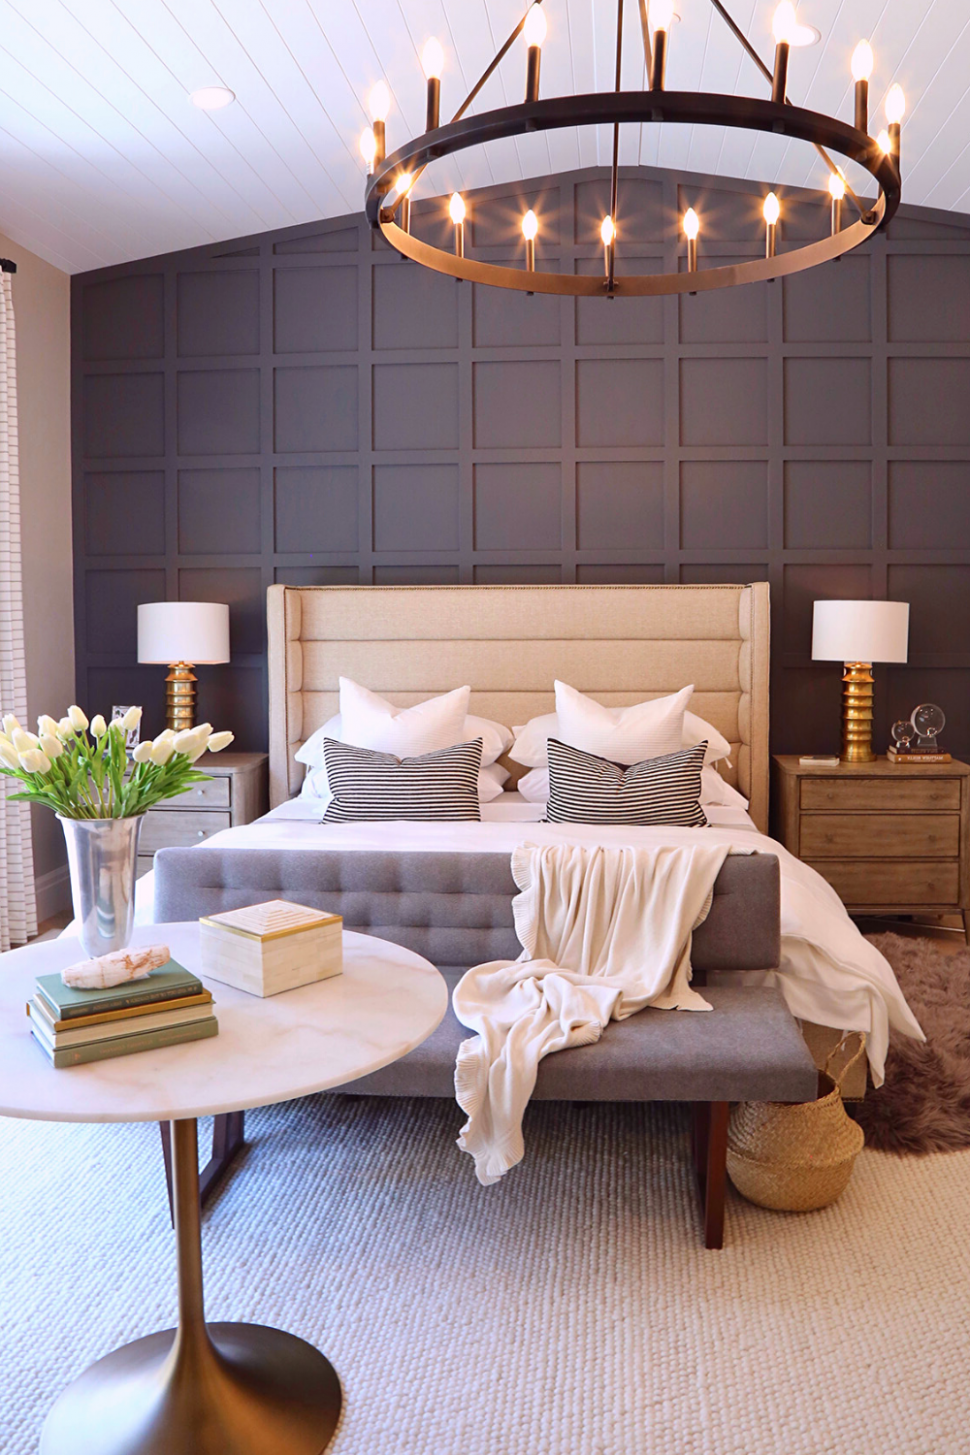 Simple Ideas for Adding Blush Accents to your Decor 9 in 9  - Bedroom Ideas Uk 2020